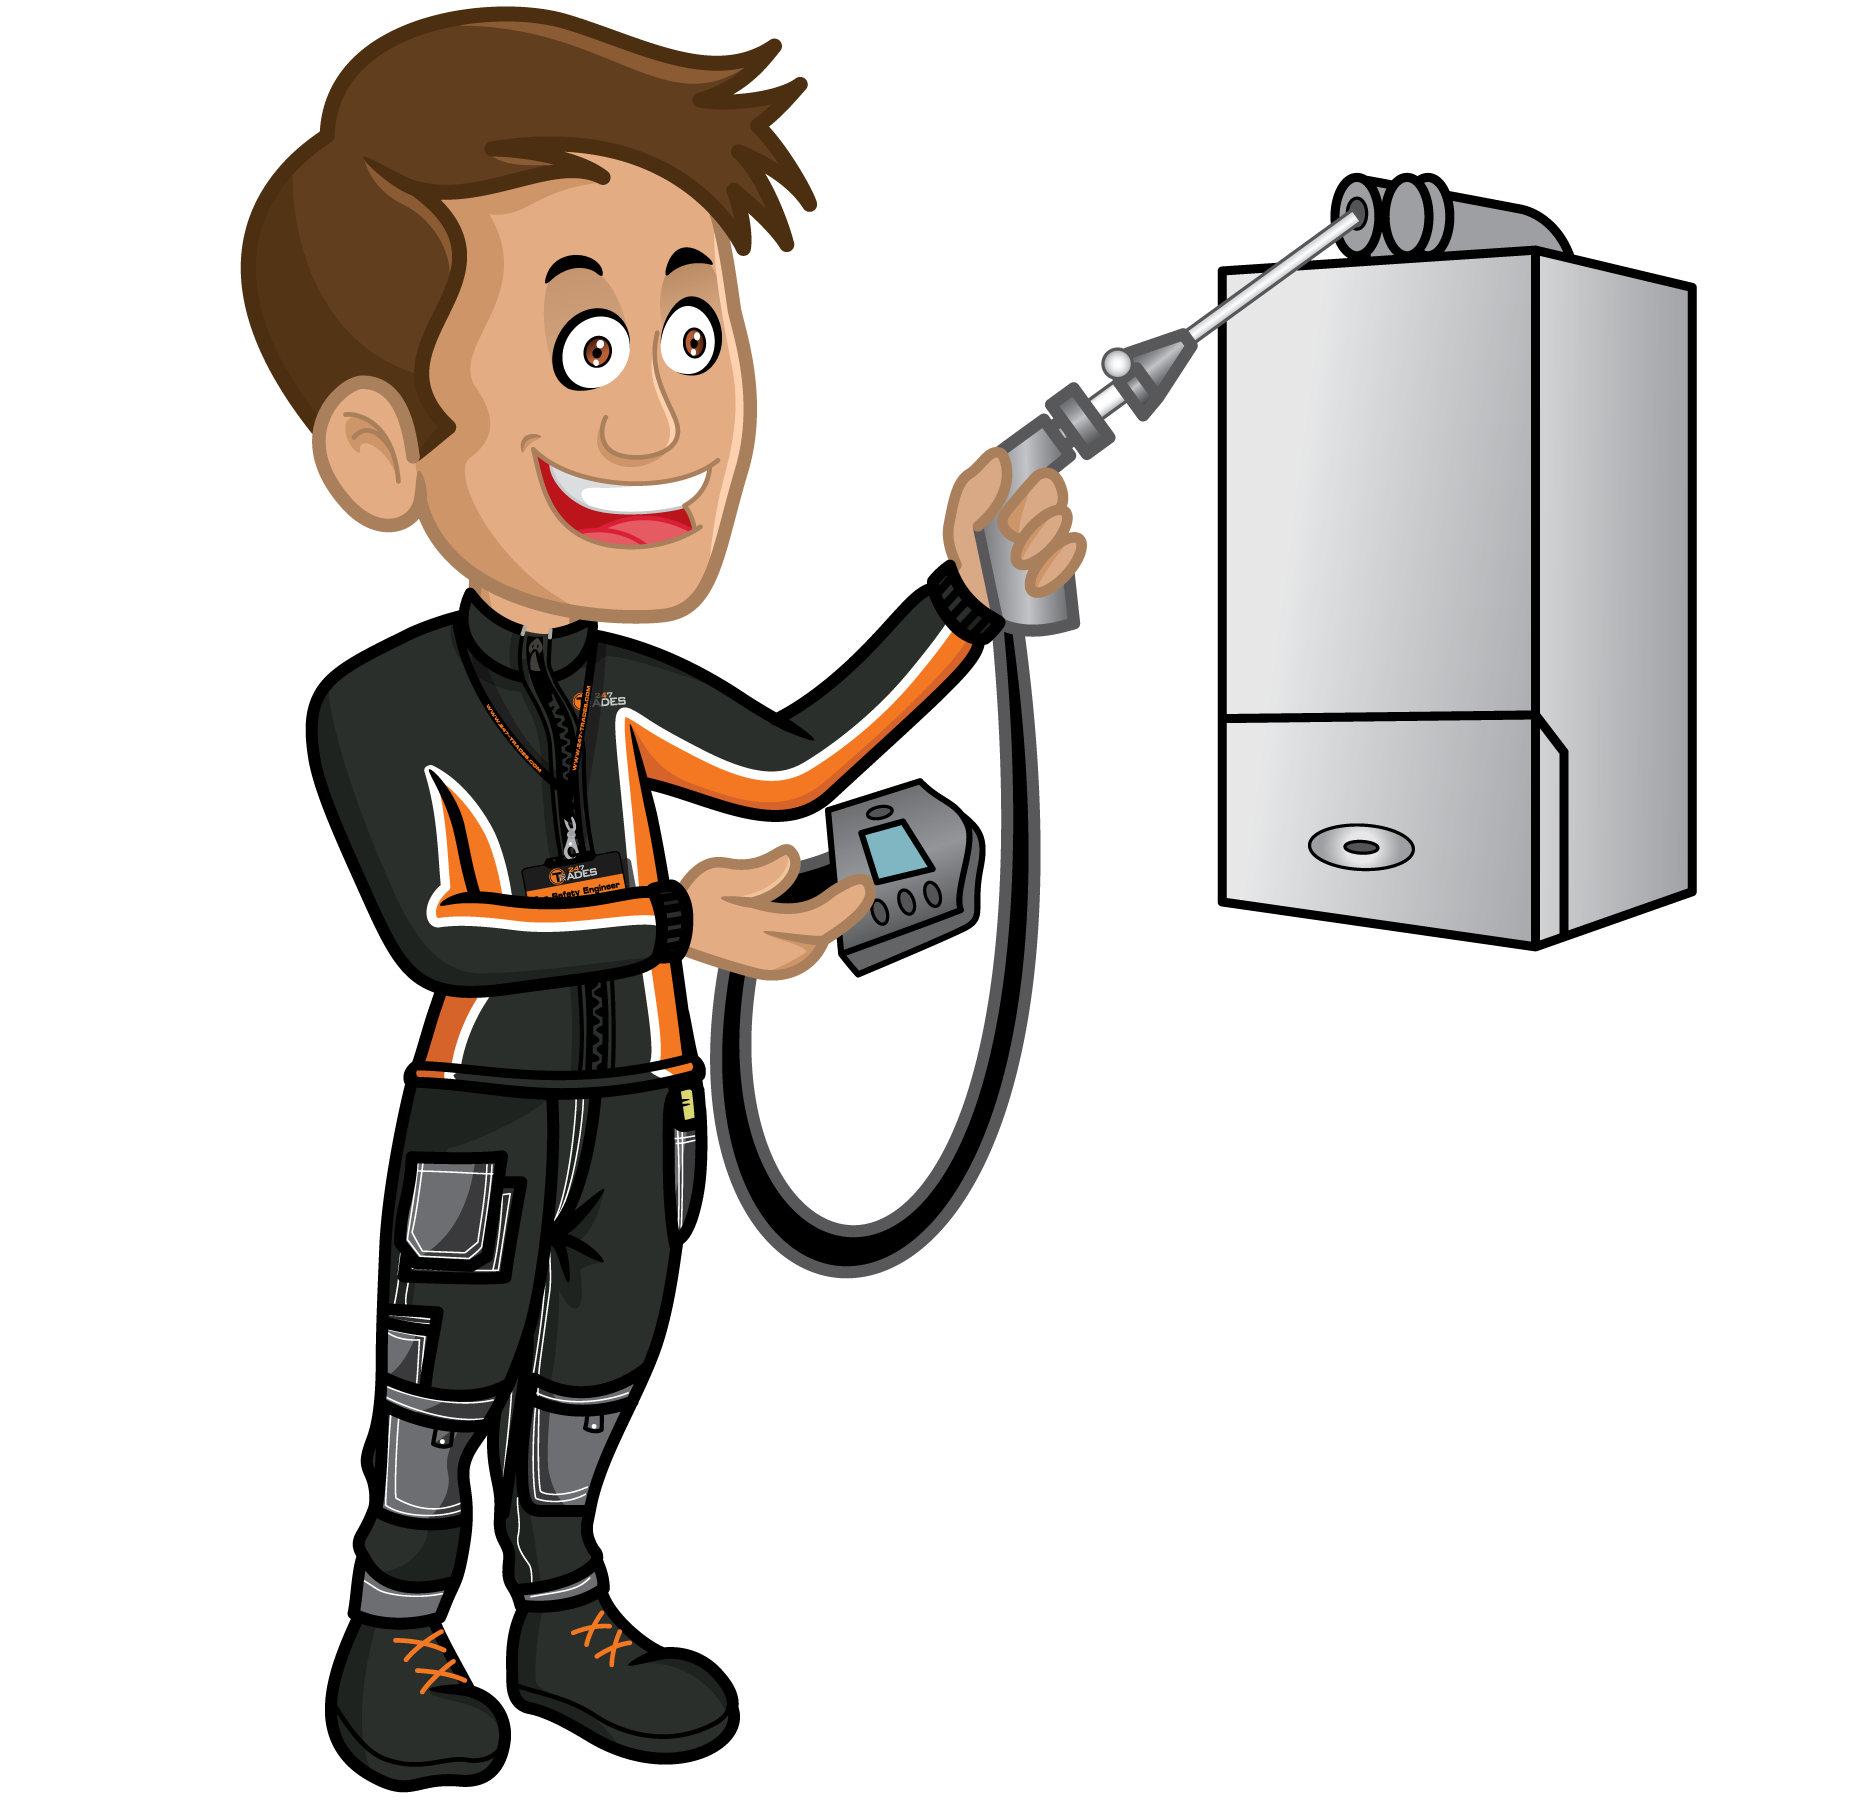 trades offers plumbing. Engineer clipart safety engineer